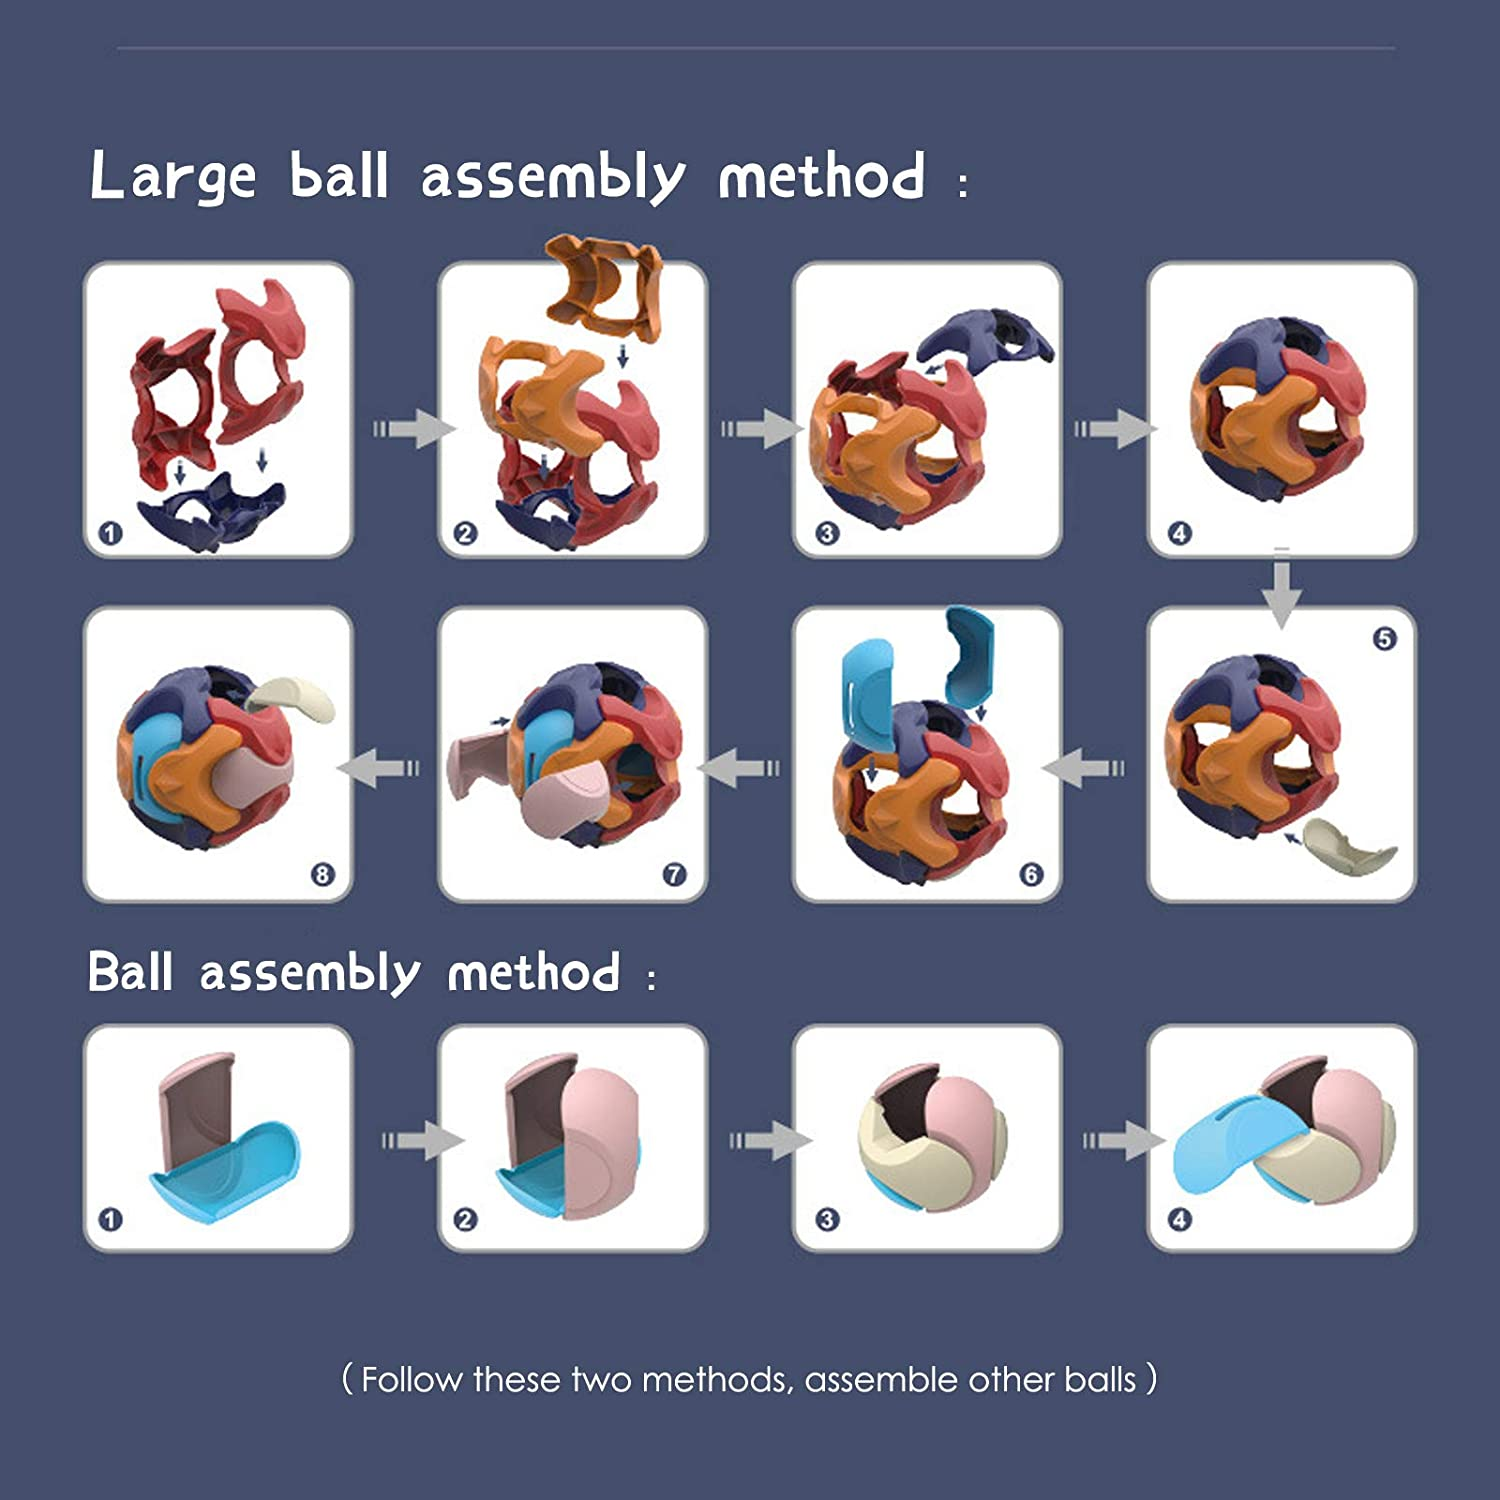 3D Puzzle Ball Games for Kids Bank I Baby Ball Toy Puzzle for Kid I Plastic Balls for Kids Puzzle I 3D Puzzle for Kids Money Bank,Assembly Building Blocks Educational Toys for Kids 3-6 Teasers Toys